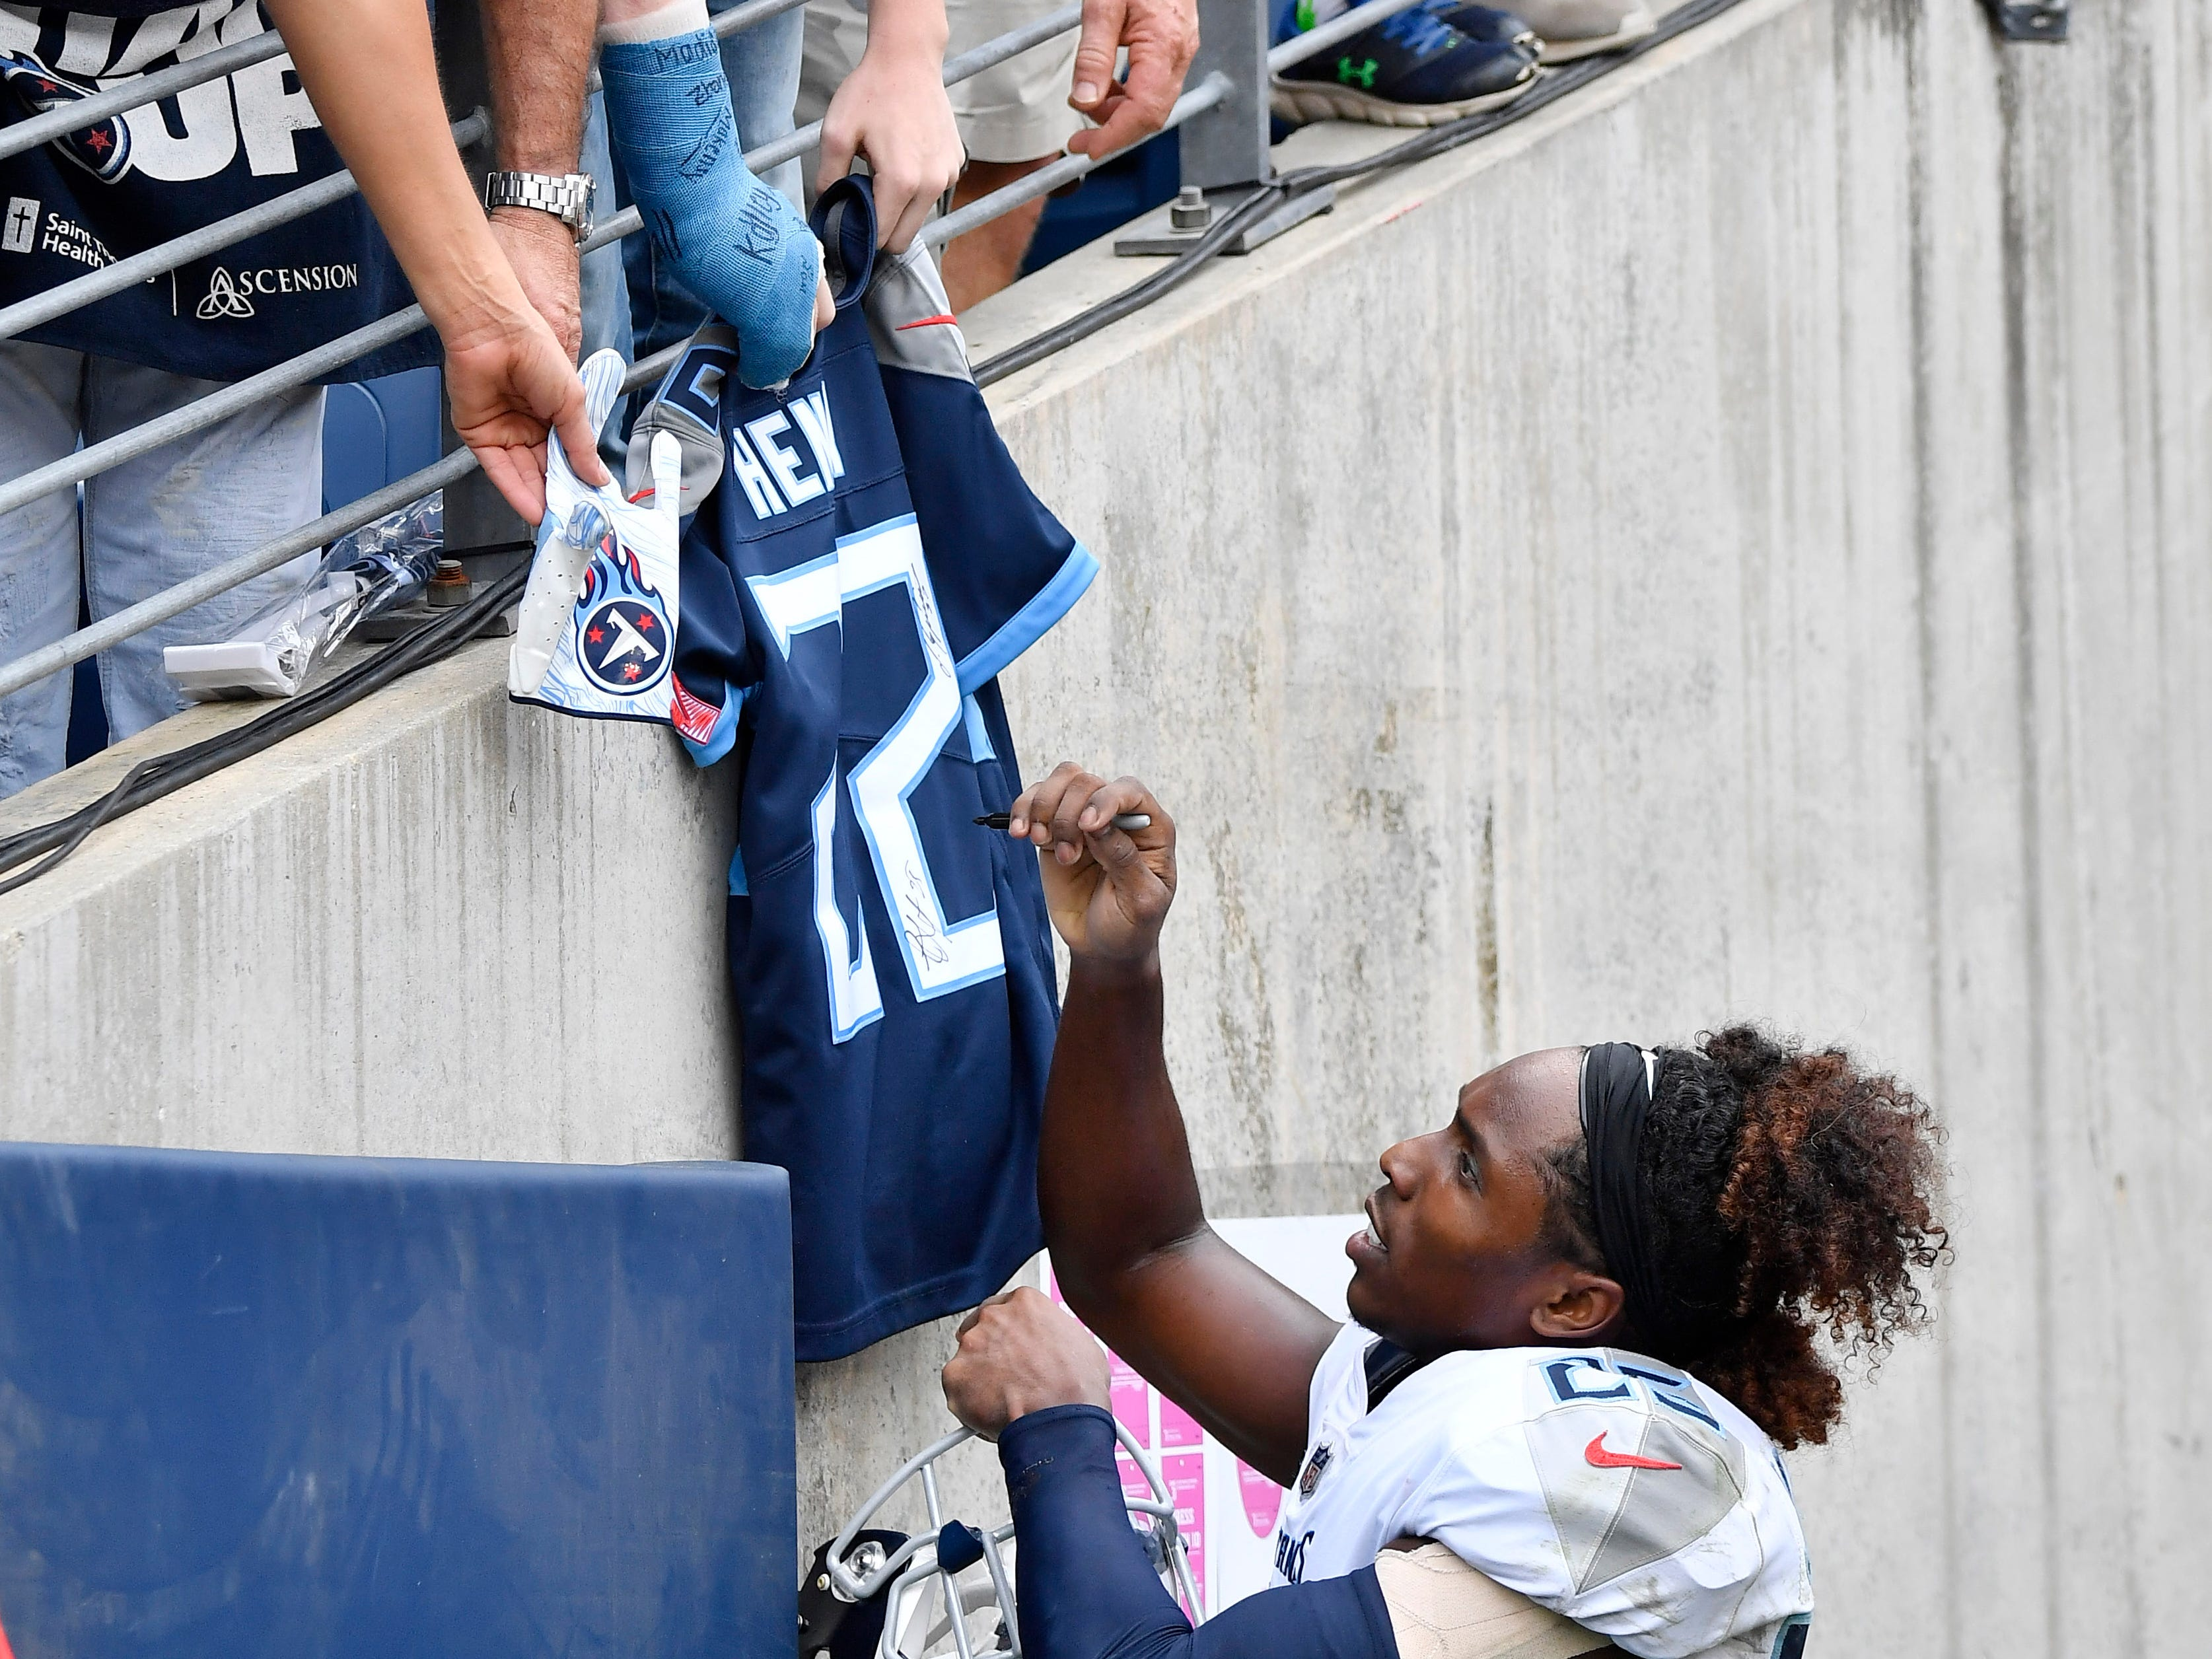 Titans cornerback Adoree' Jackson (25) signs autographs after the team's 20-17 win over the Texans at Nissan Stadium Sunday, Sept. 16, 2018, in Nashville, Tenn.